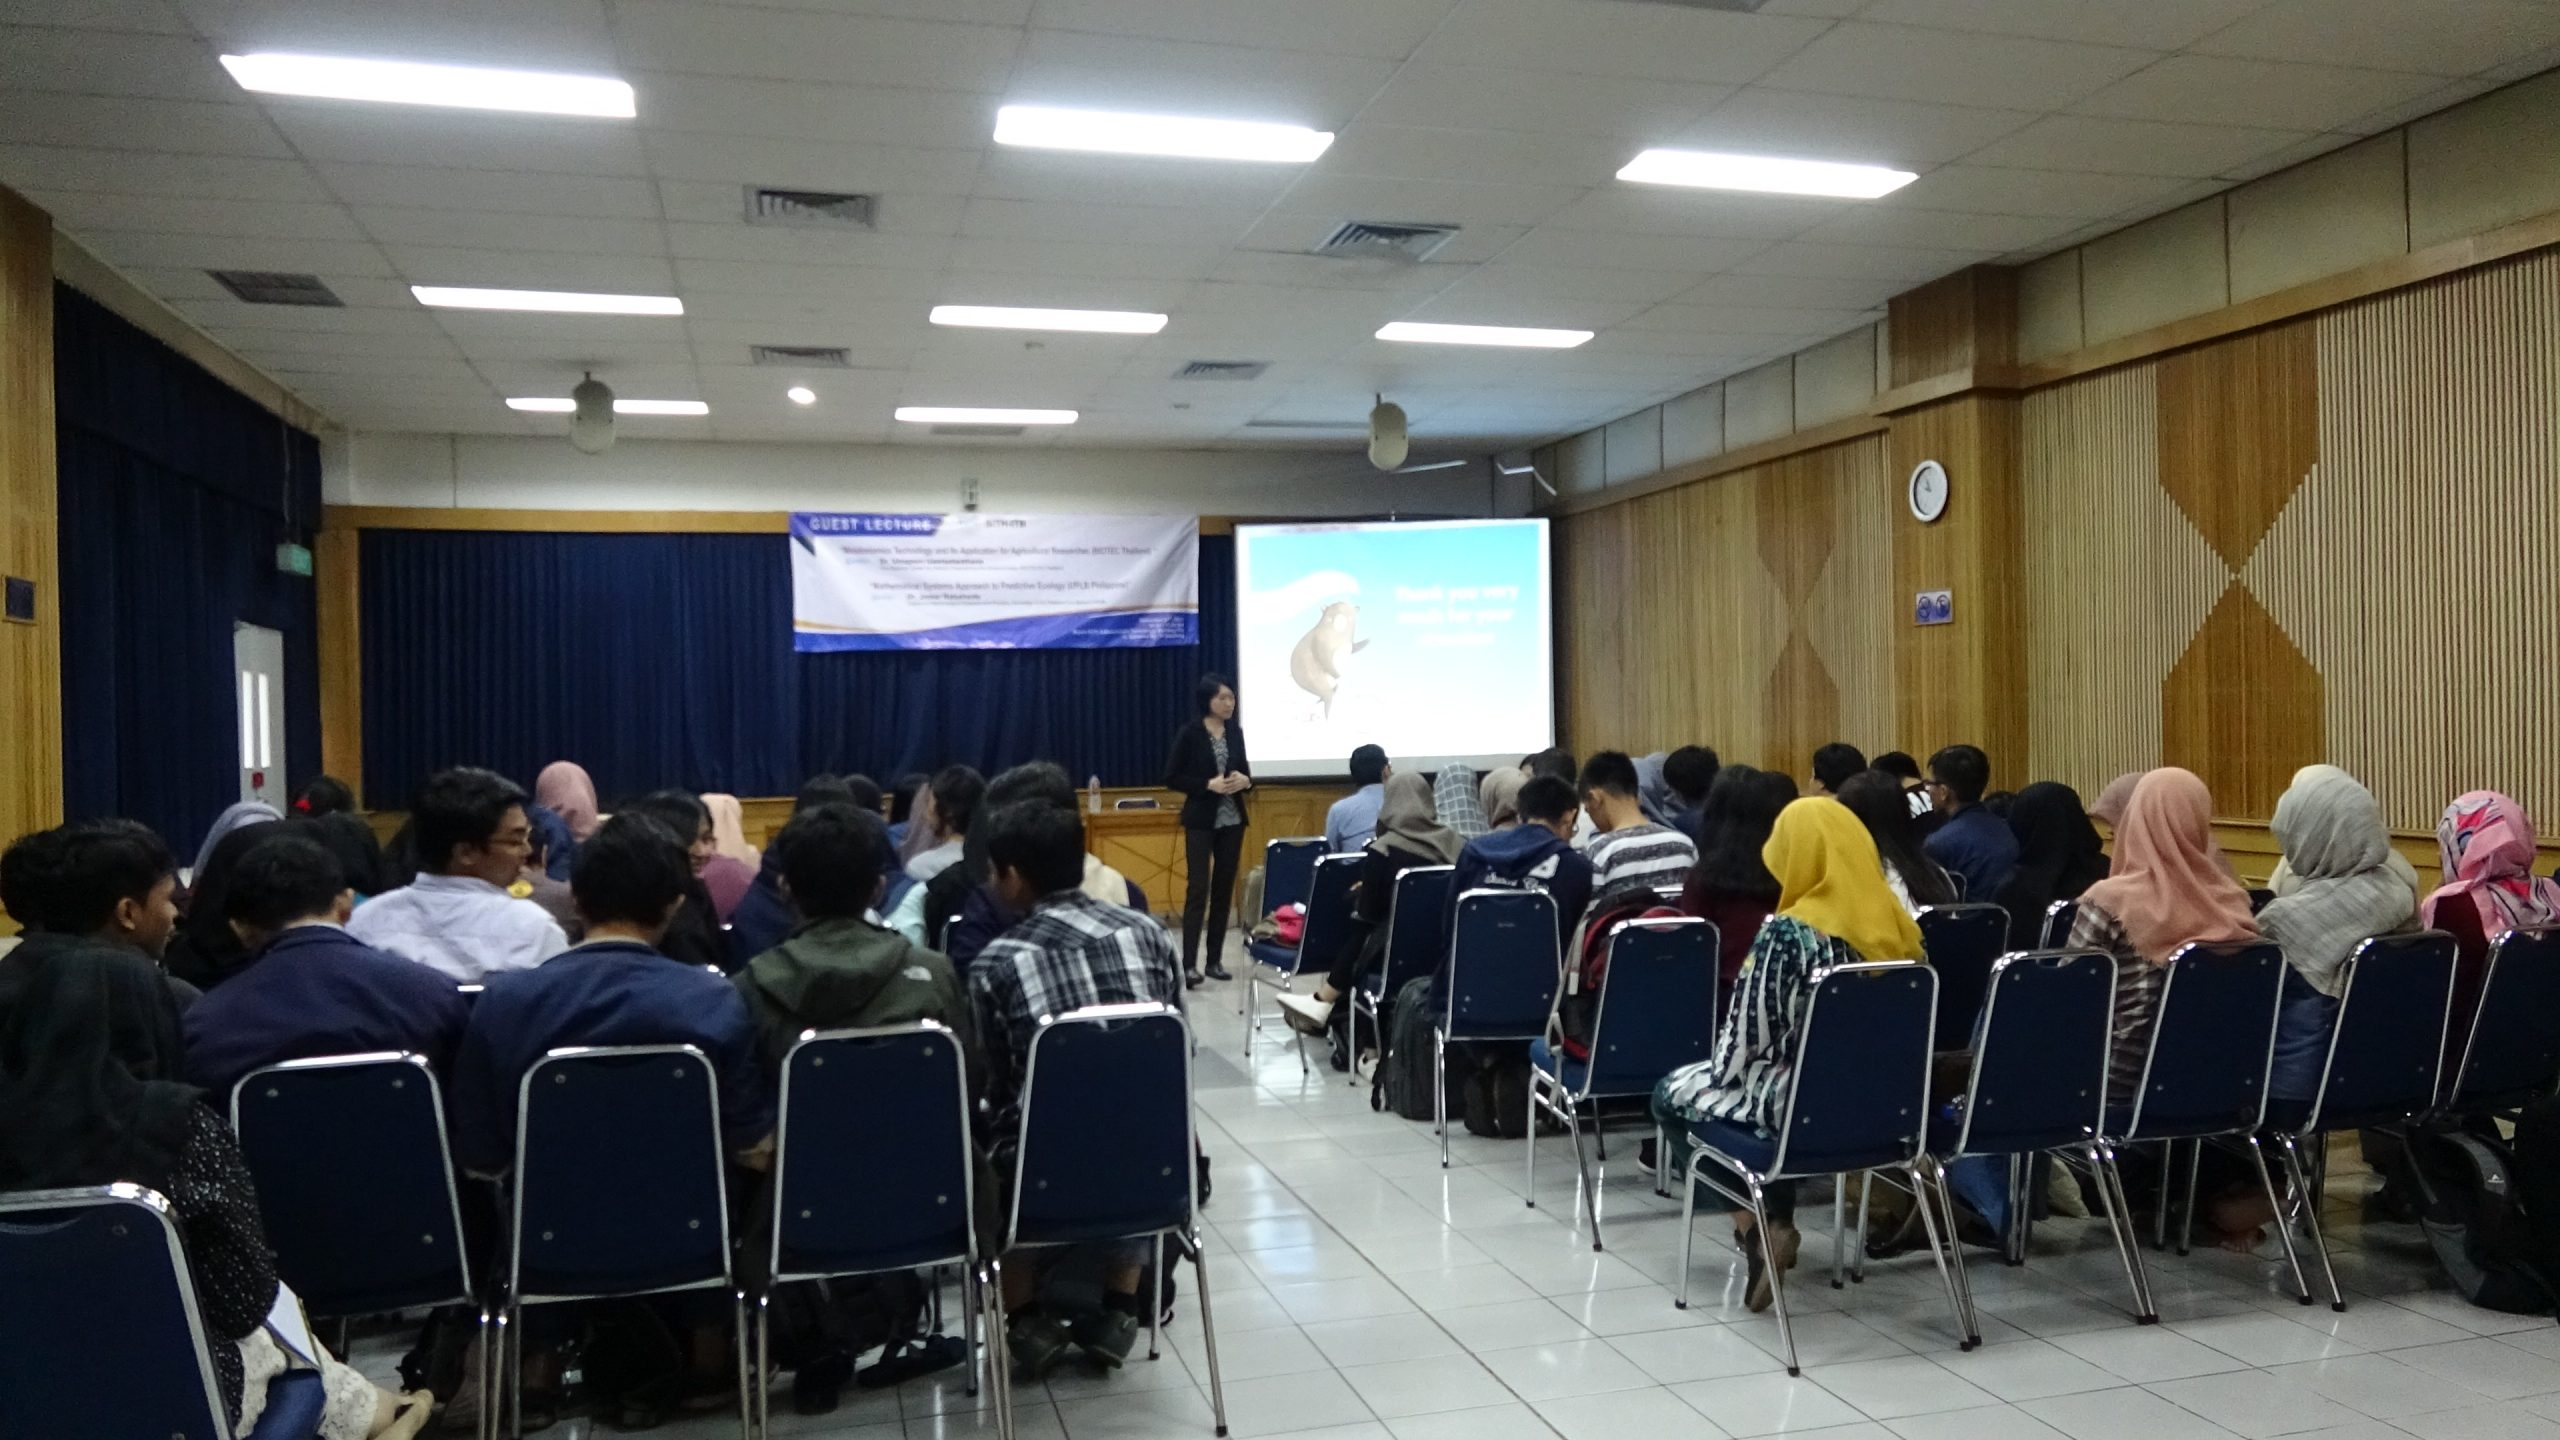 Guest Lecture : Microbiology Study Program, SITH ITB (Dr. Umaporn Uawisetwathana and Dr. Jomar Rabajante)